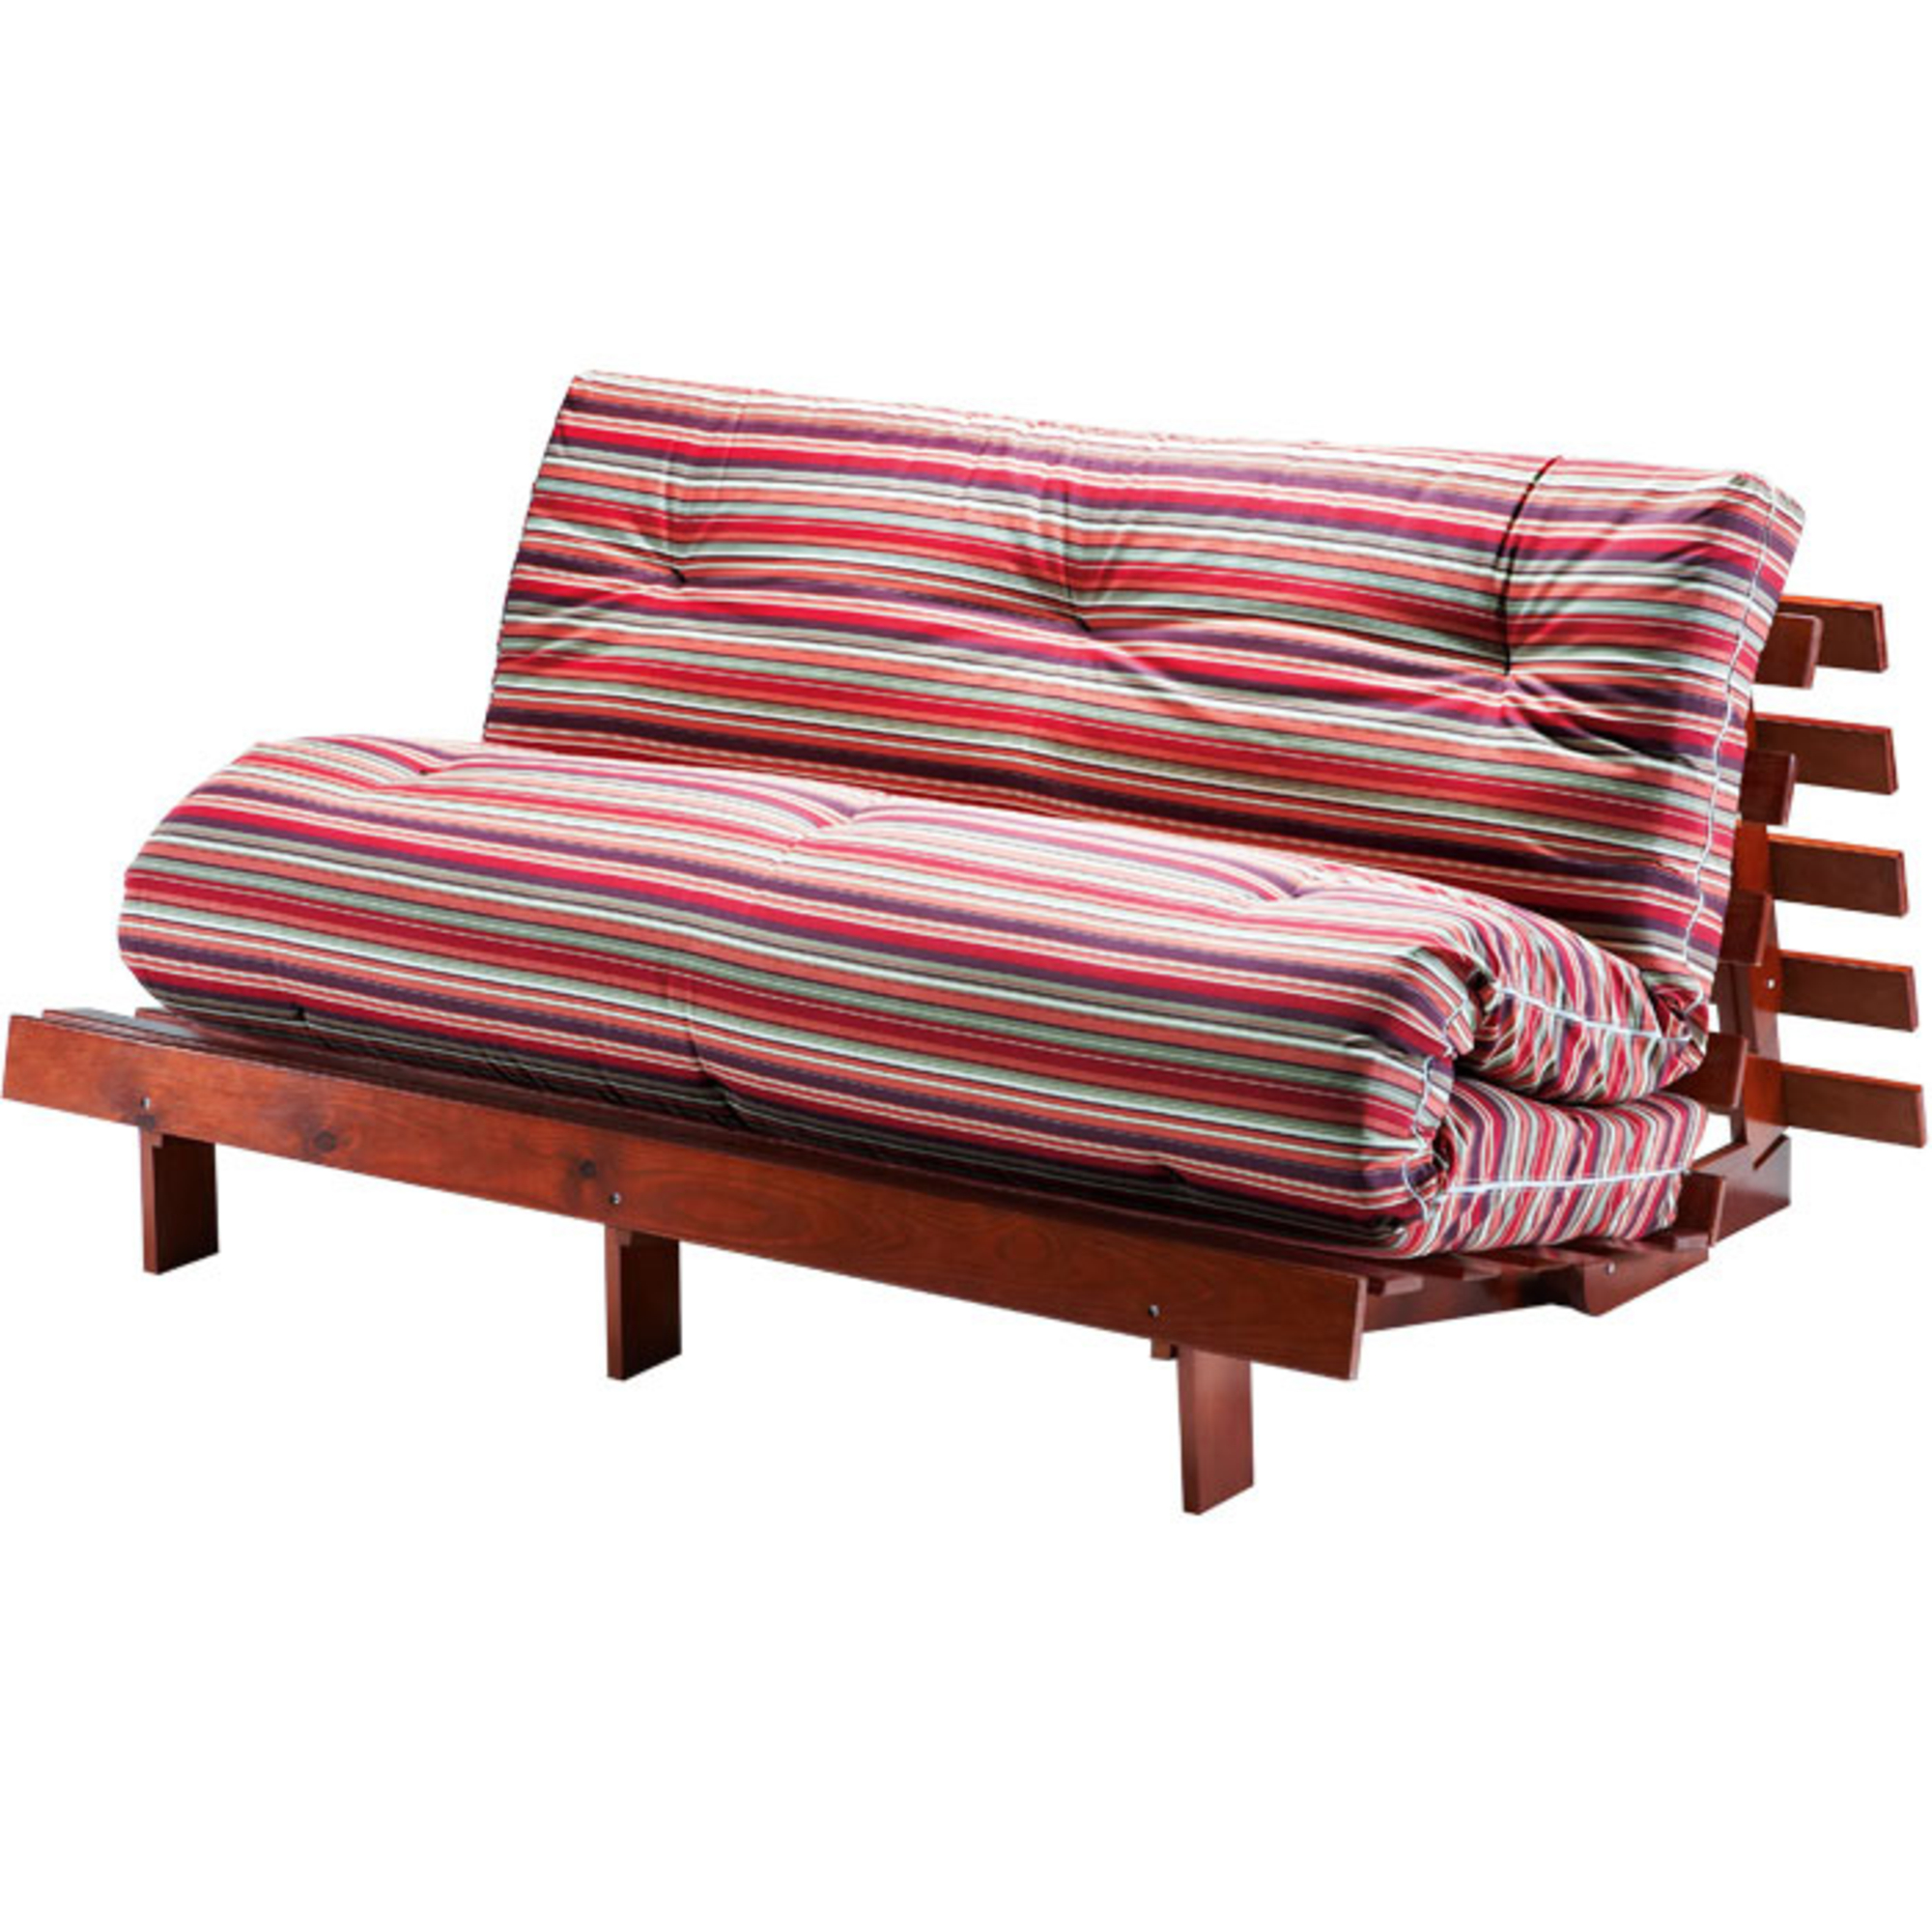 Canap futon toulouse for Canape toulouse